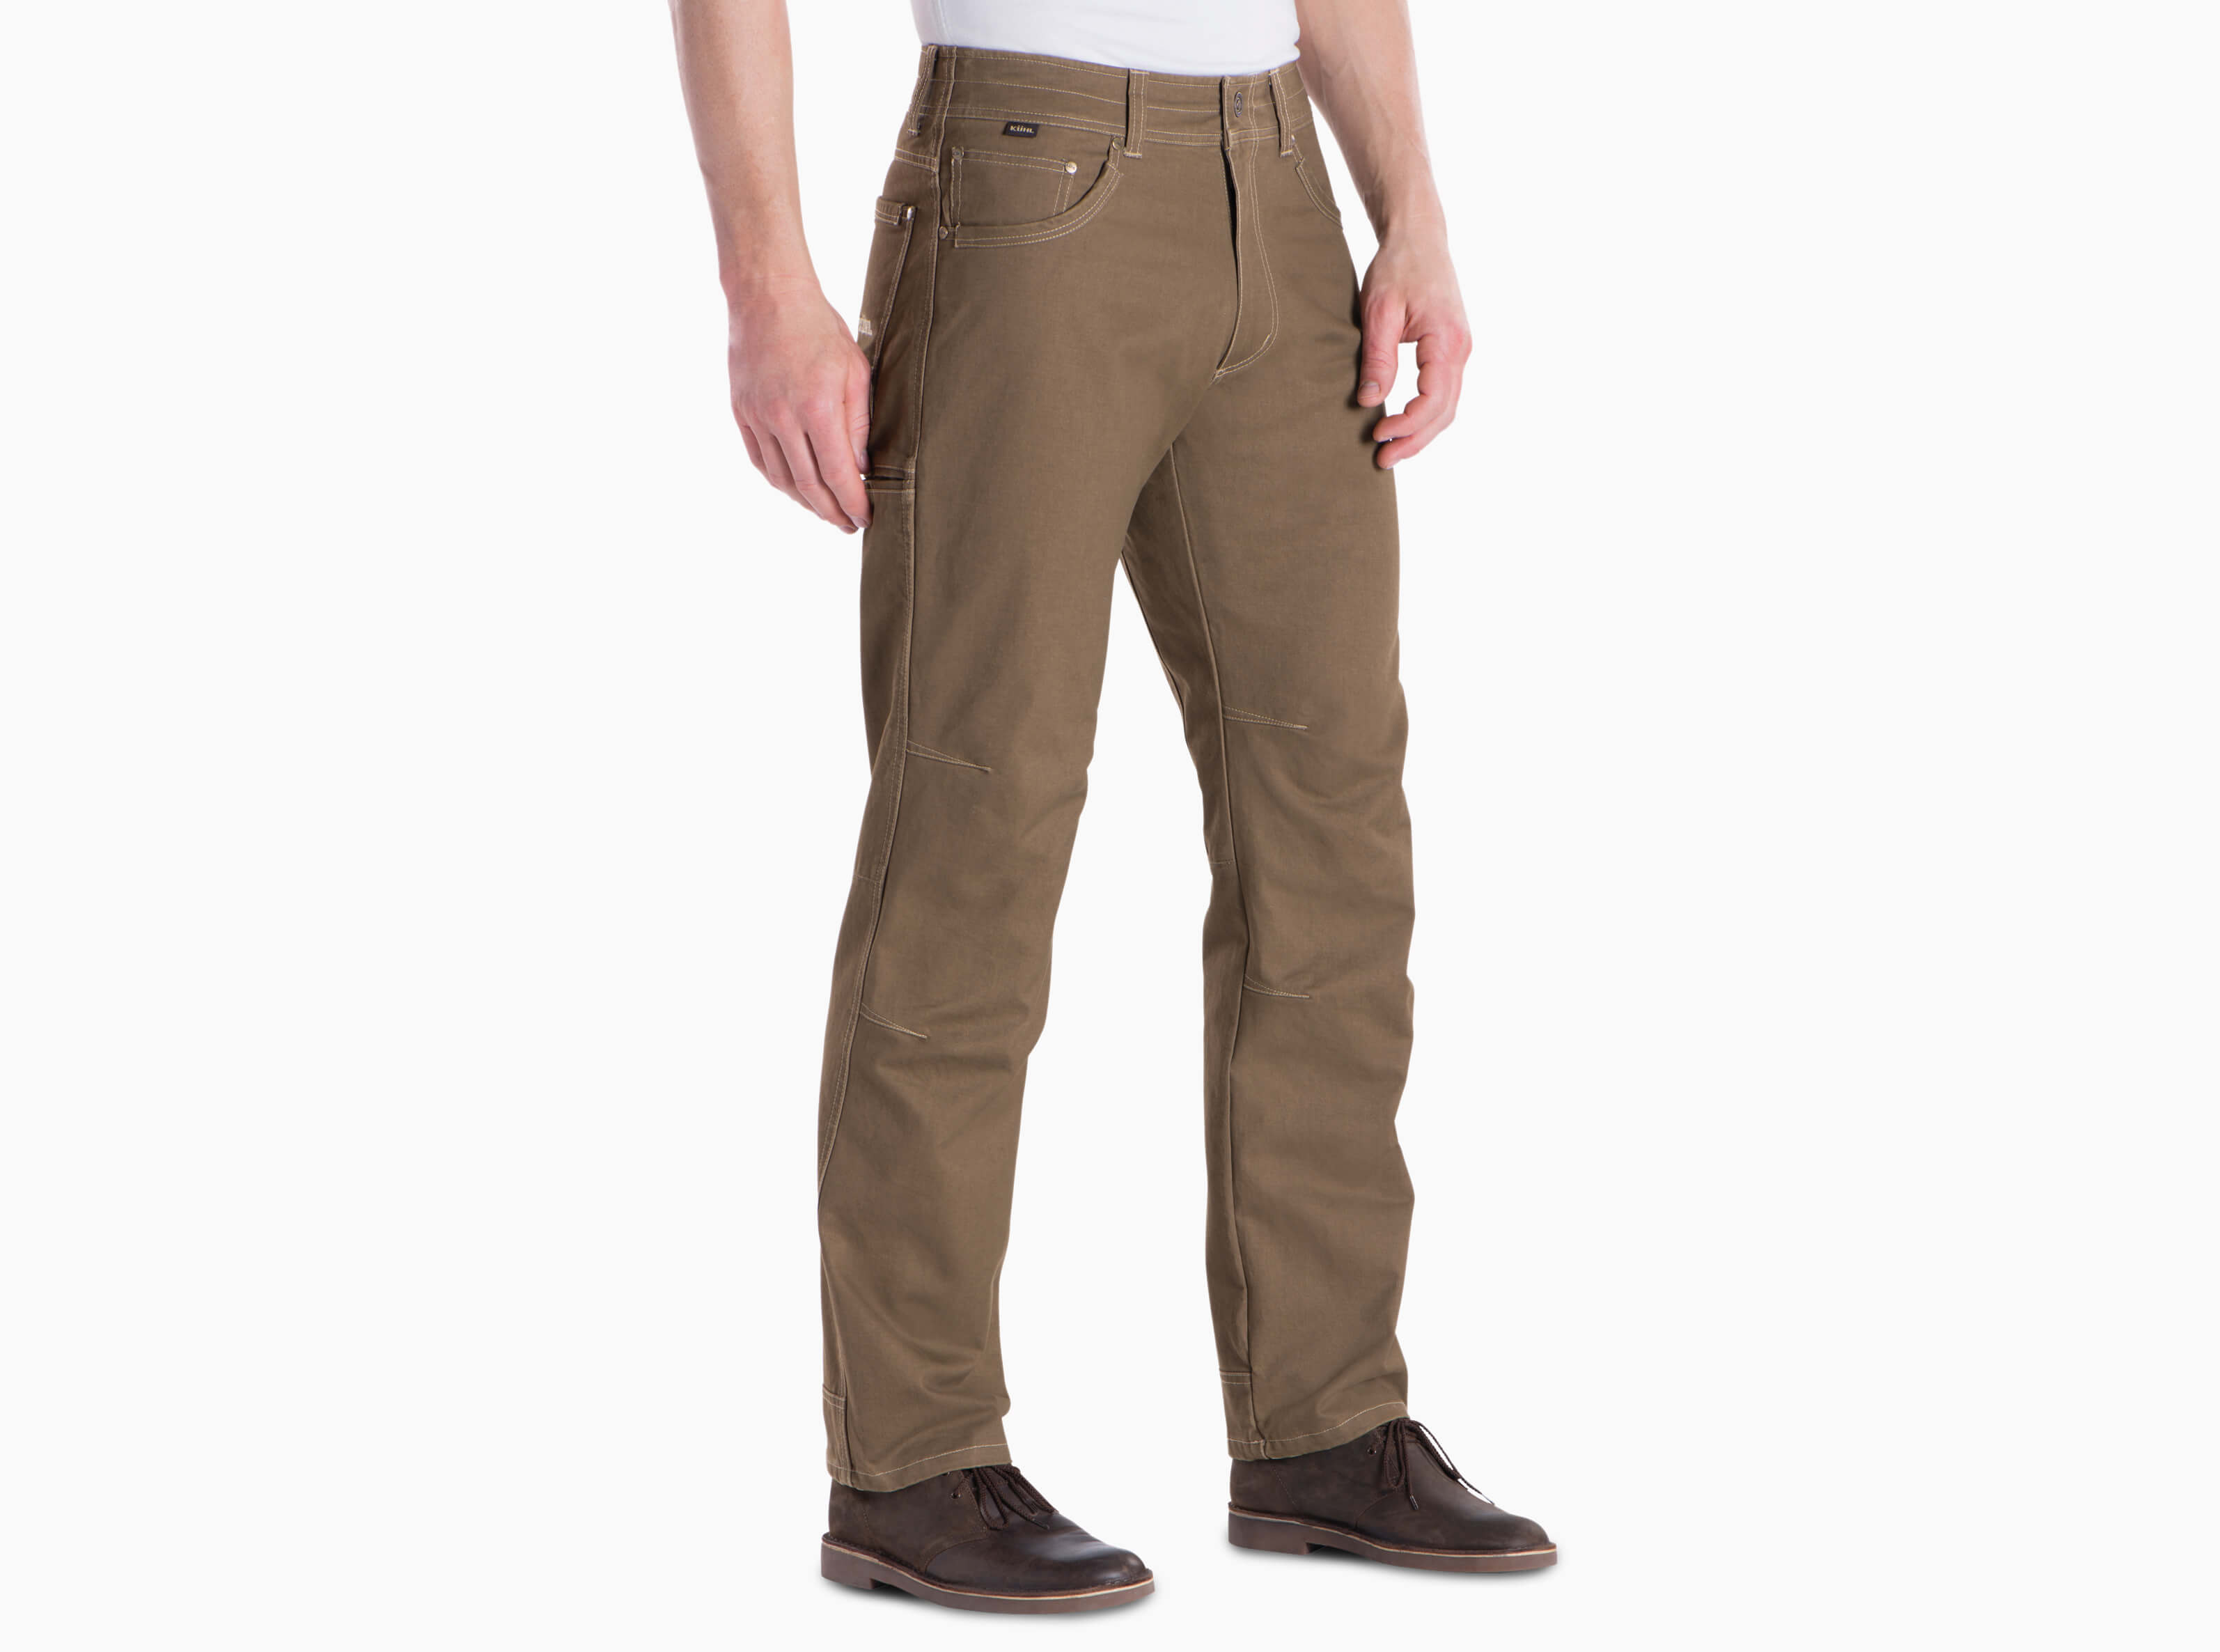 'Kuhl' Men's Hot Rydr™ Lined Pant - Dark Khaki